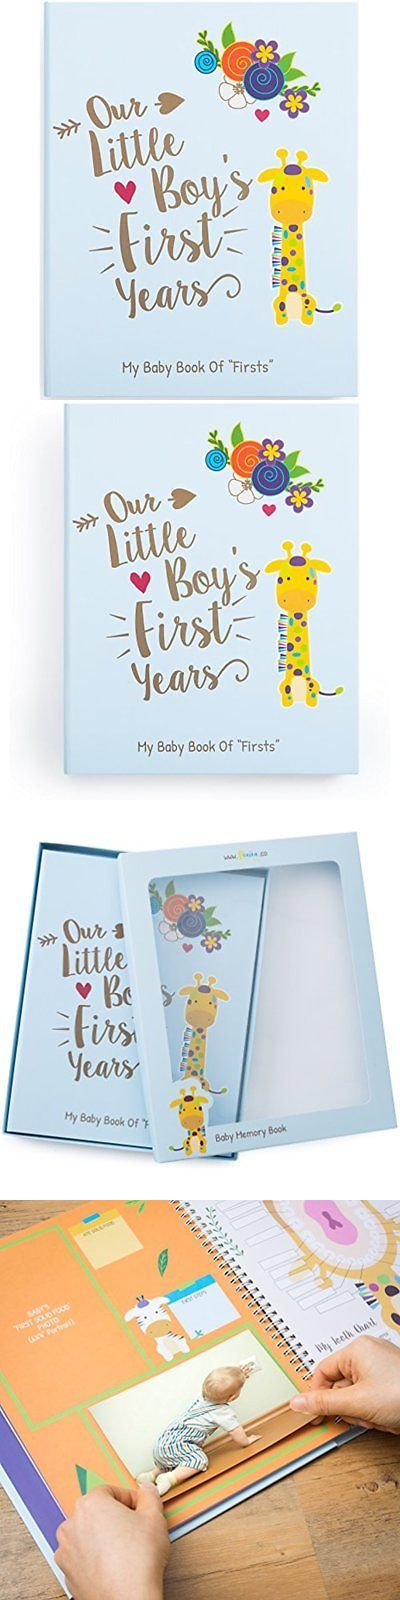 Keepsakes and Baby Announcements 117388: Memory Book For Baby Boy, Photo Album, Easy To Use Keepsake Scrapbook, Modern -> BUY IT NOW ONLY: $48.79 on eBay!